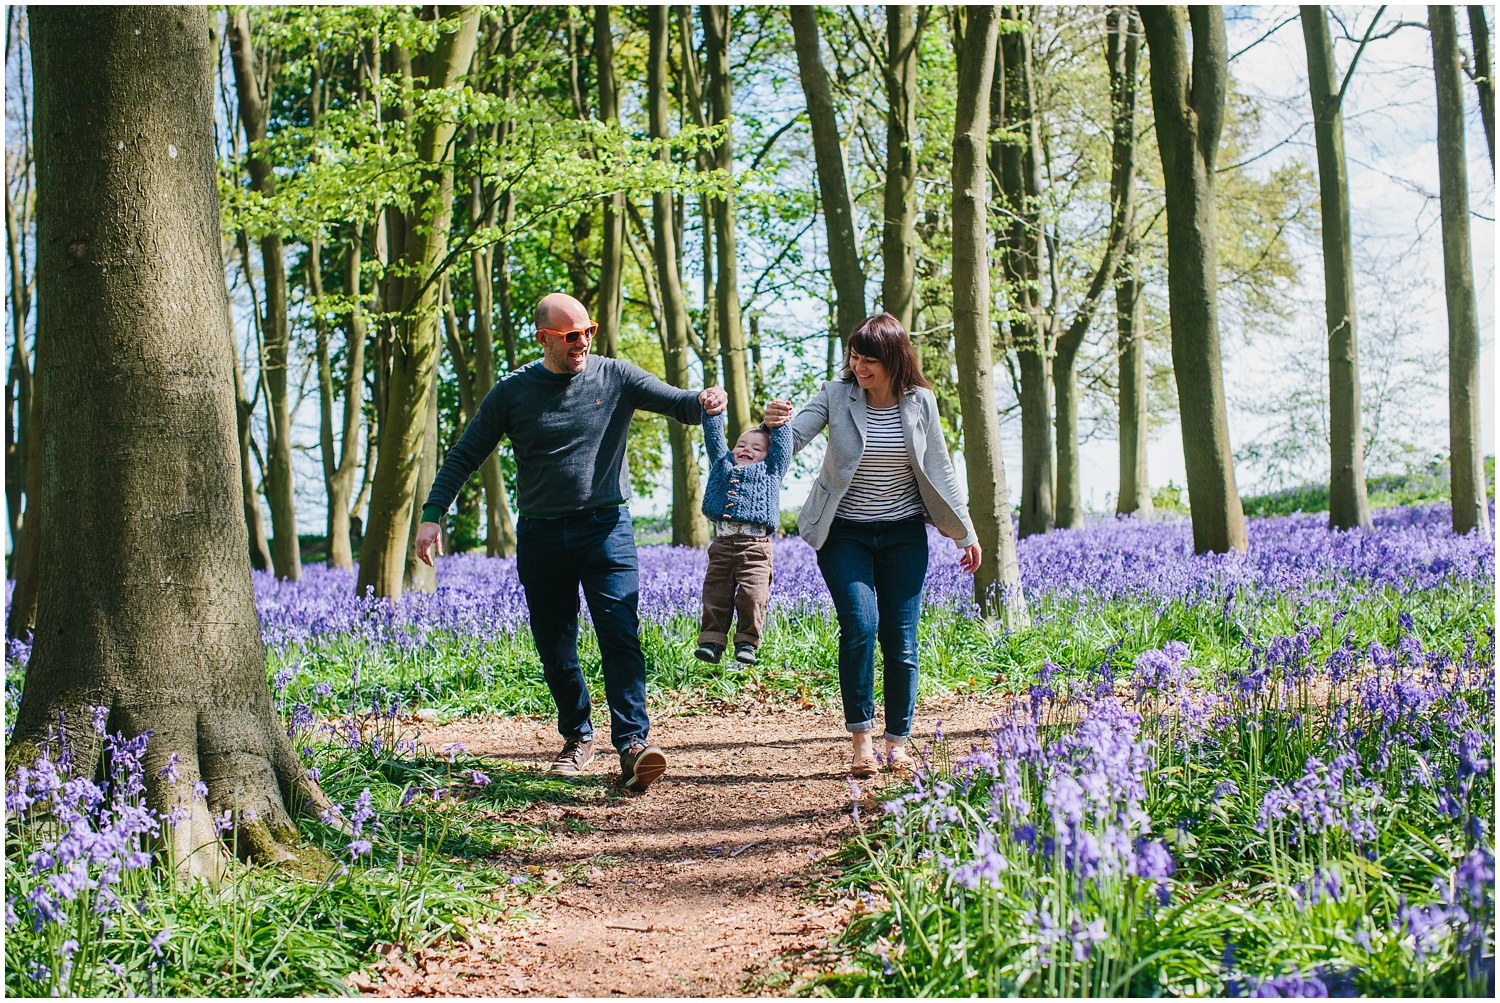 Catherine-Photography-Portraits-Family-Bluebells_0008.jpg